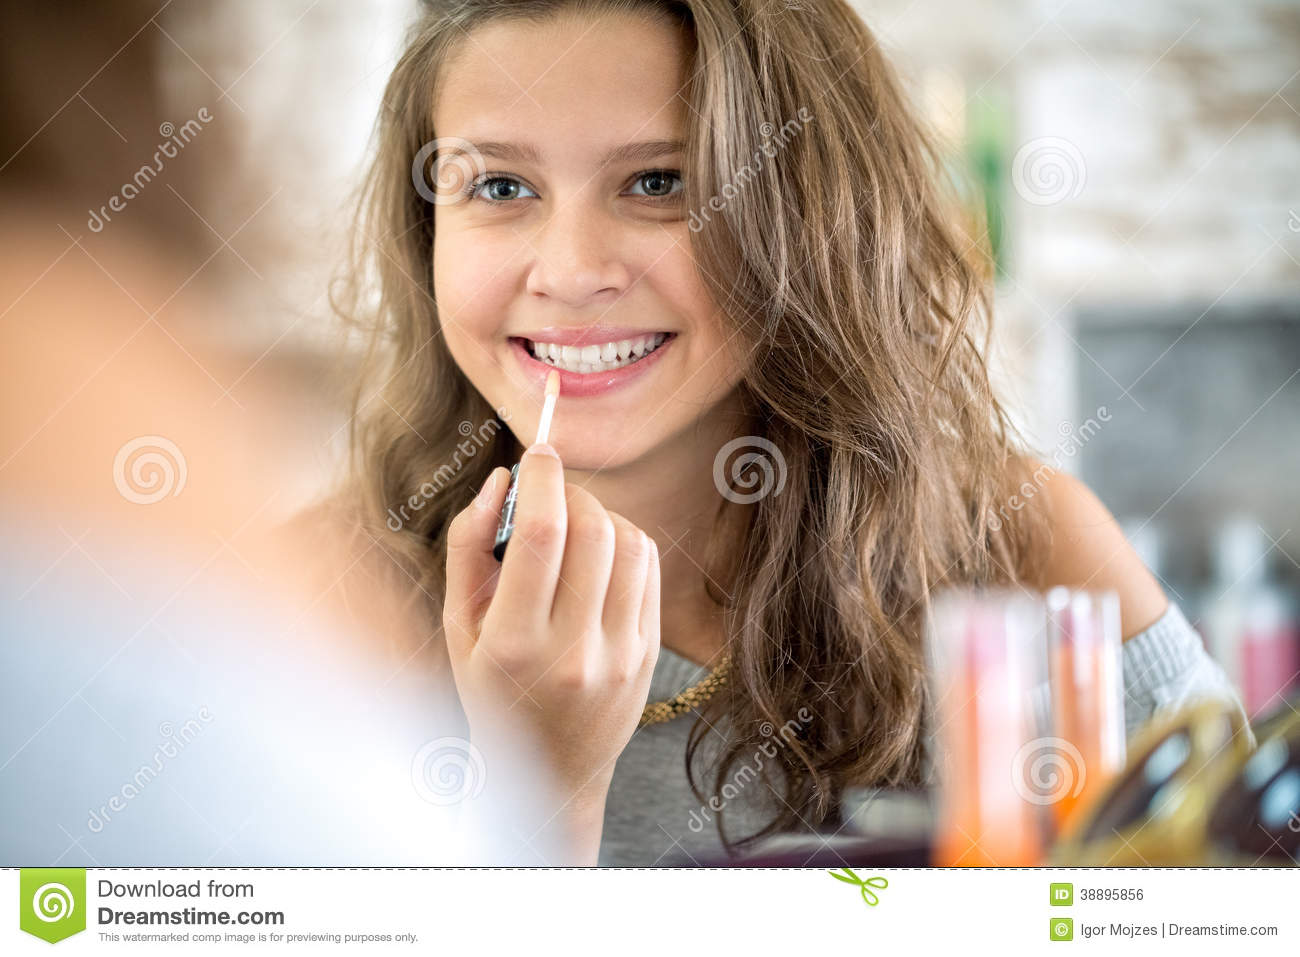 Cute girl applying lip gloss stock photo image 38895856 for Cute teenager girls